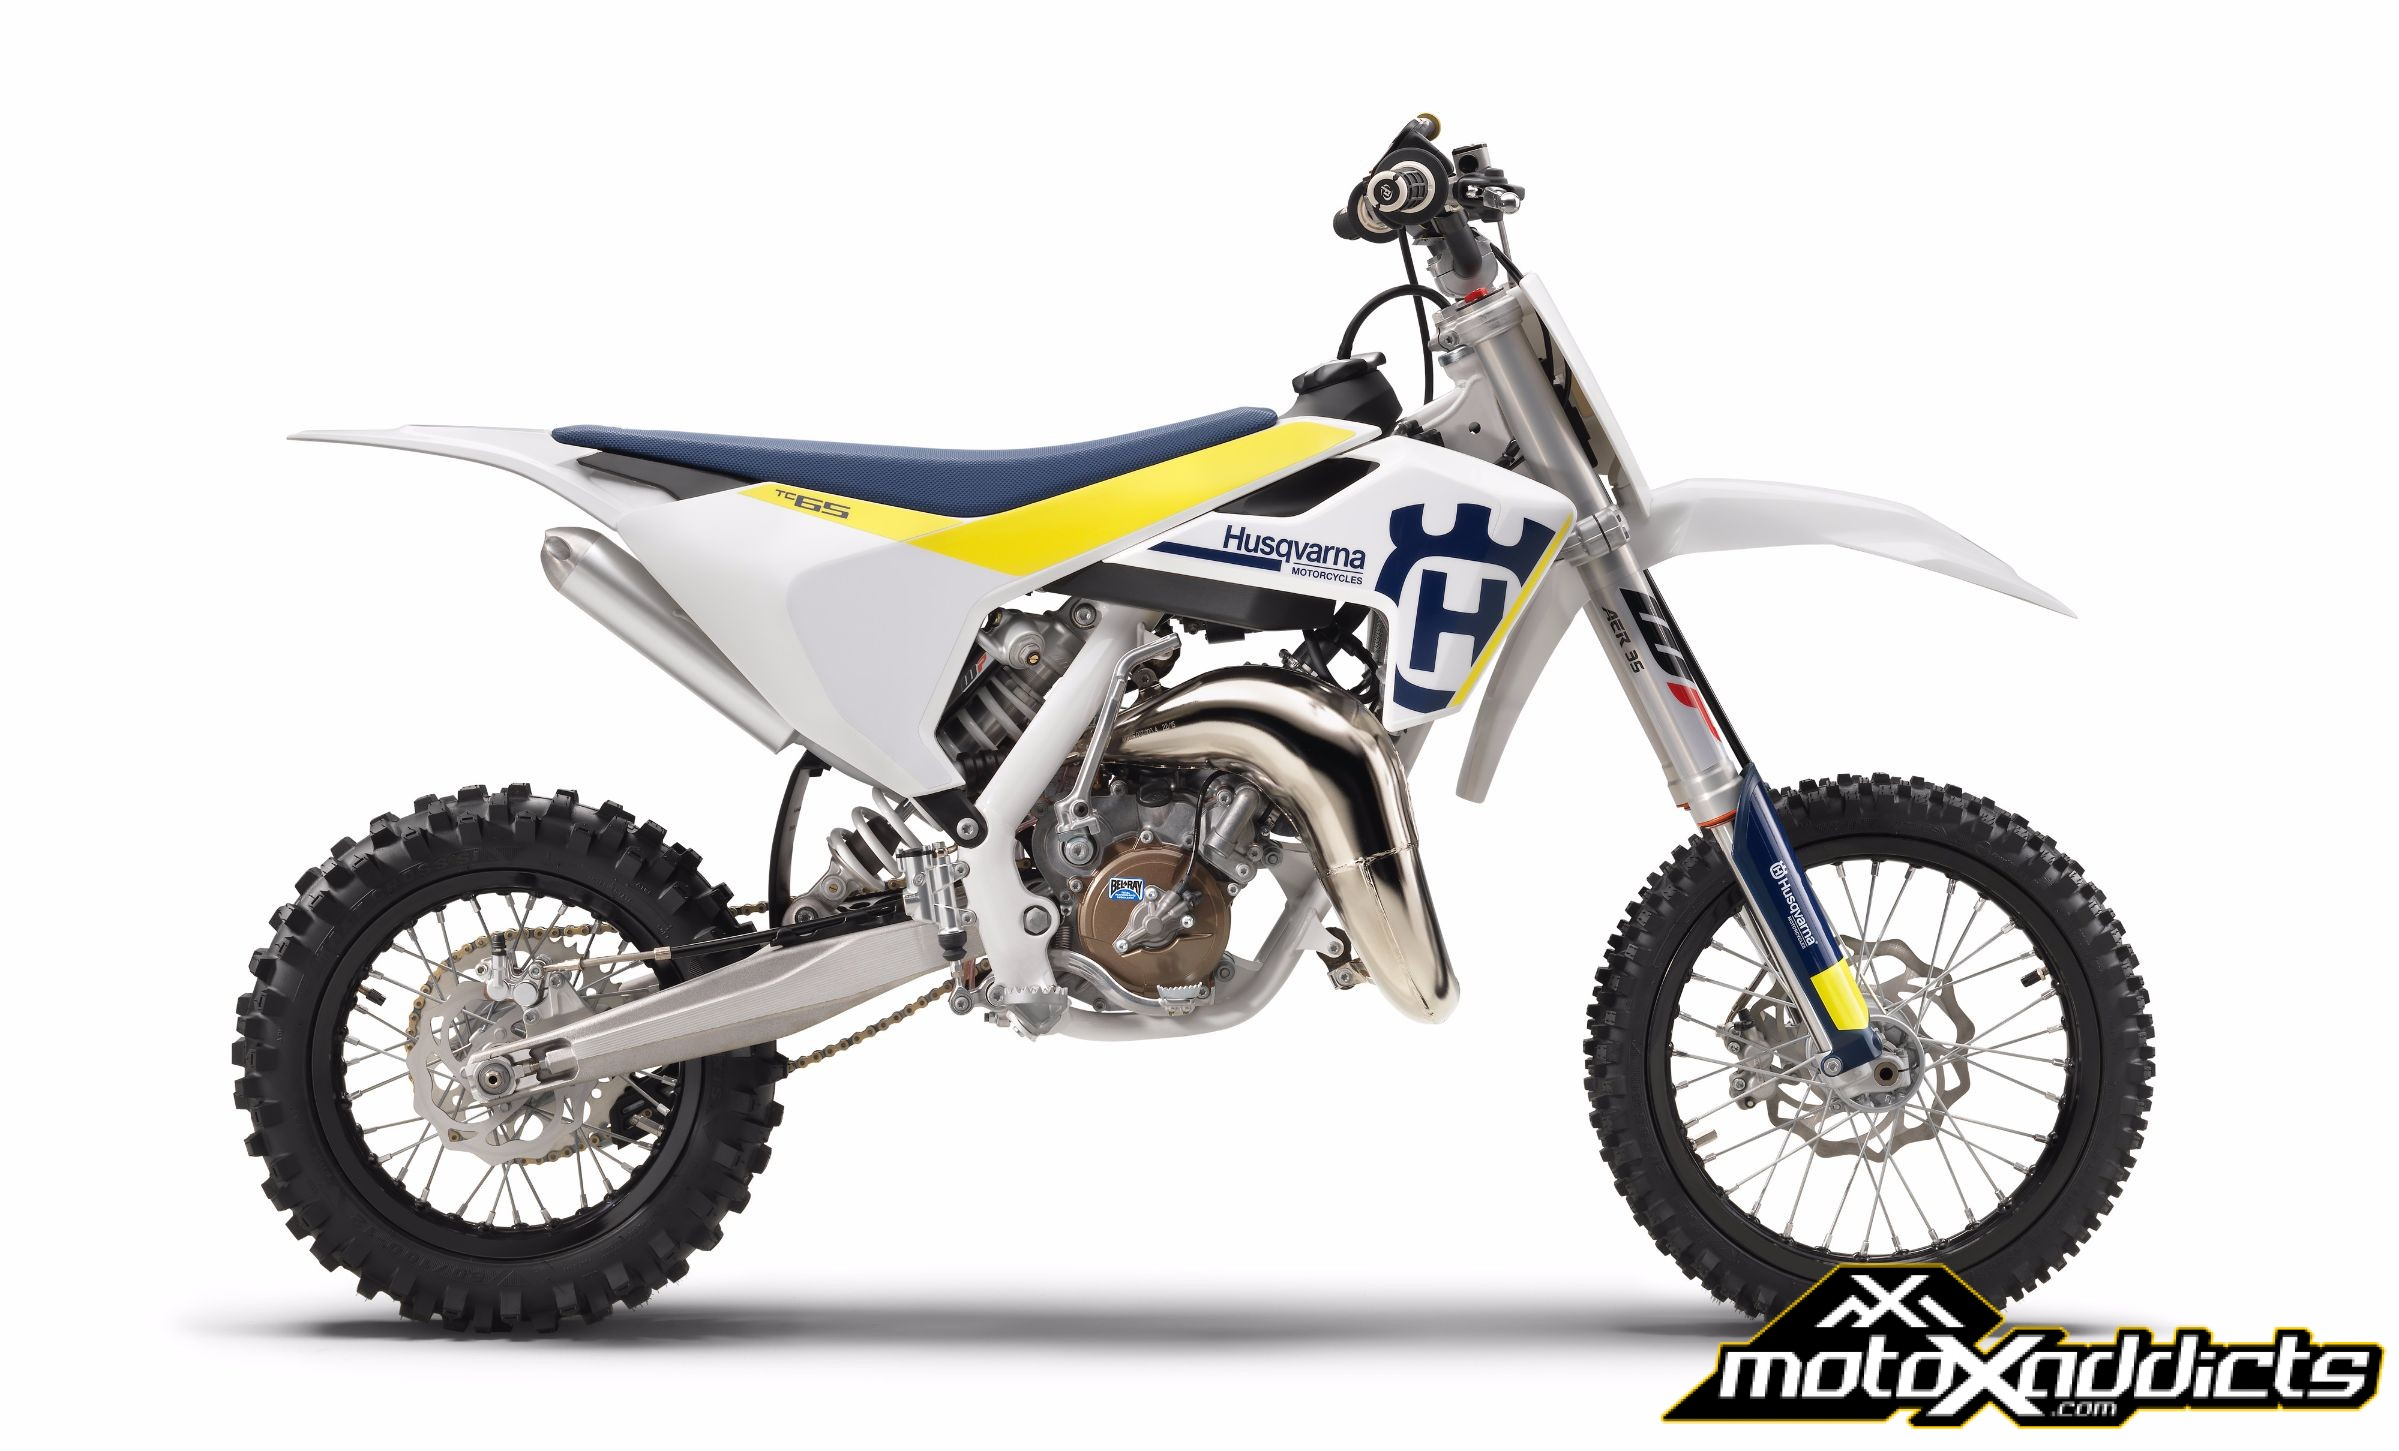 motoxaddicts new 2017 husqvarna 50cc and 65cc motocross line. Black Bedroom Furniture Sets. Home Design Ideas